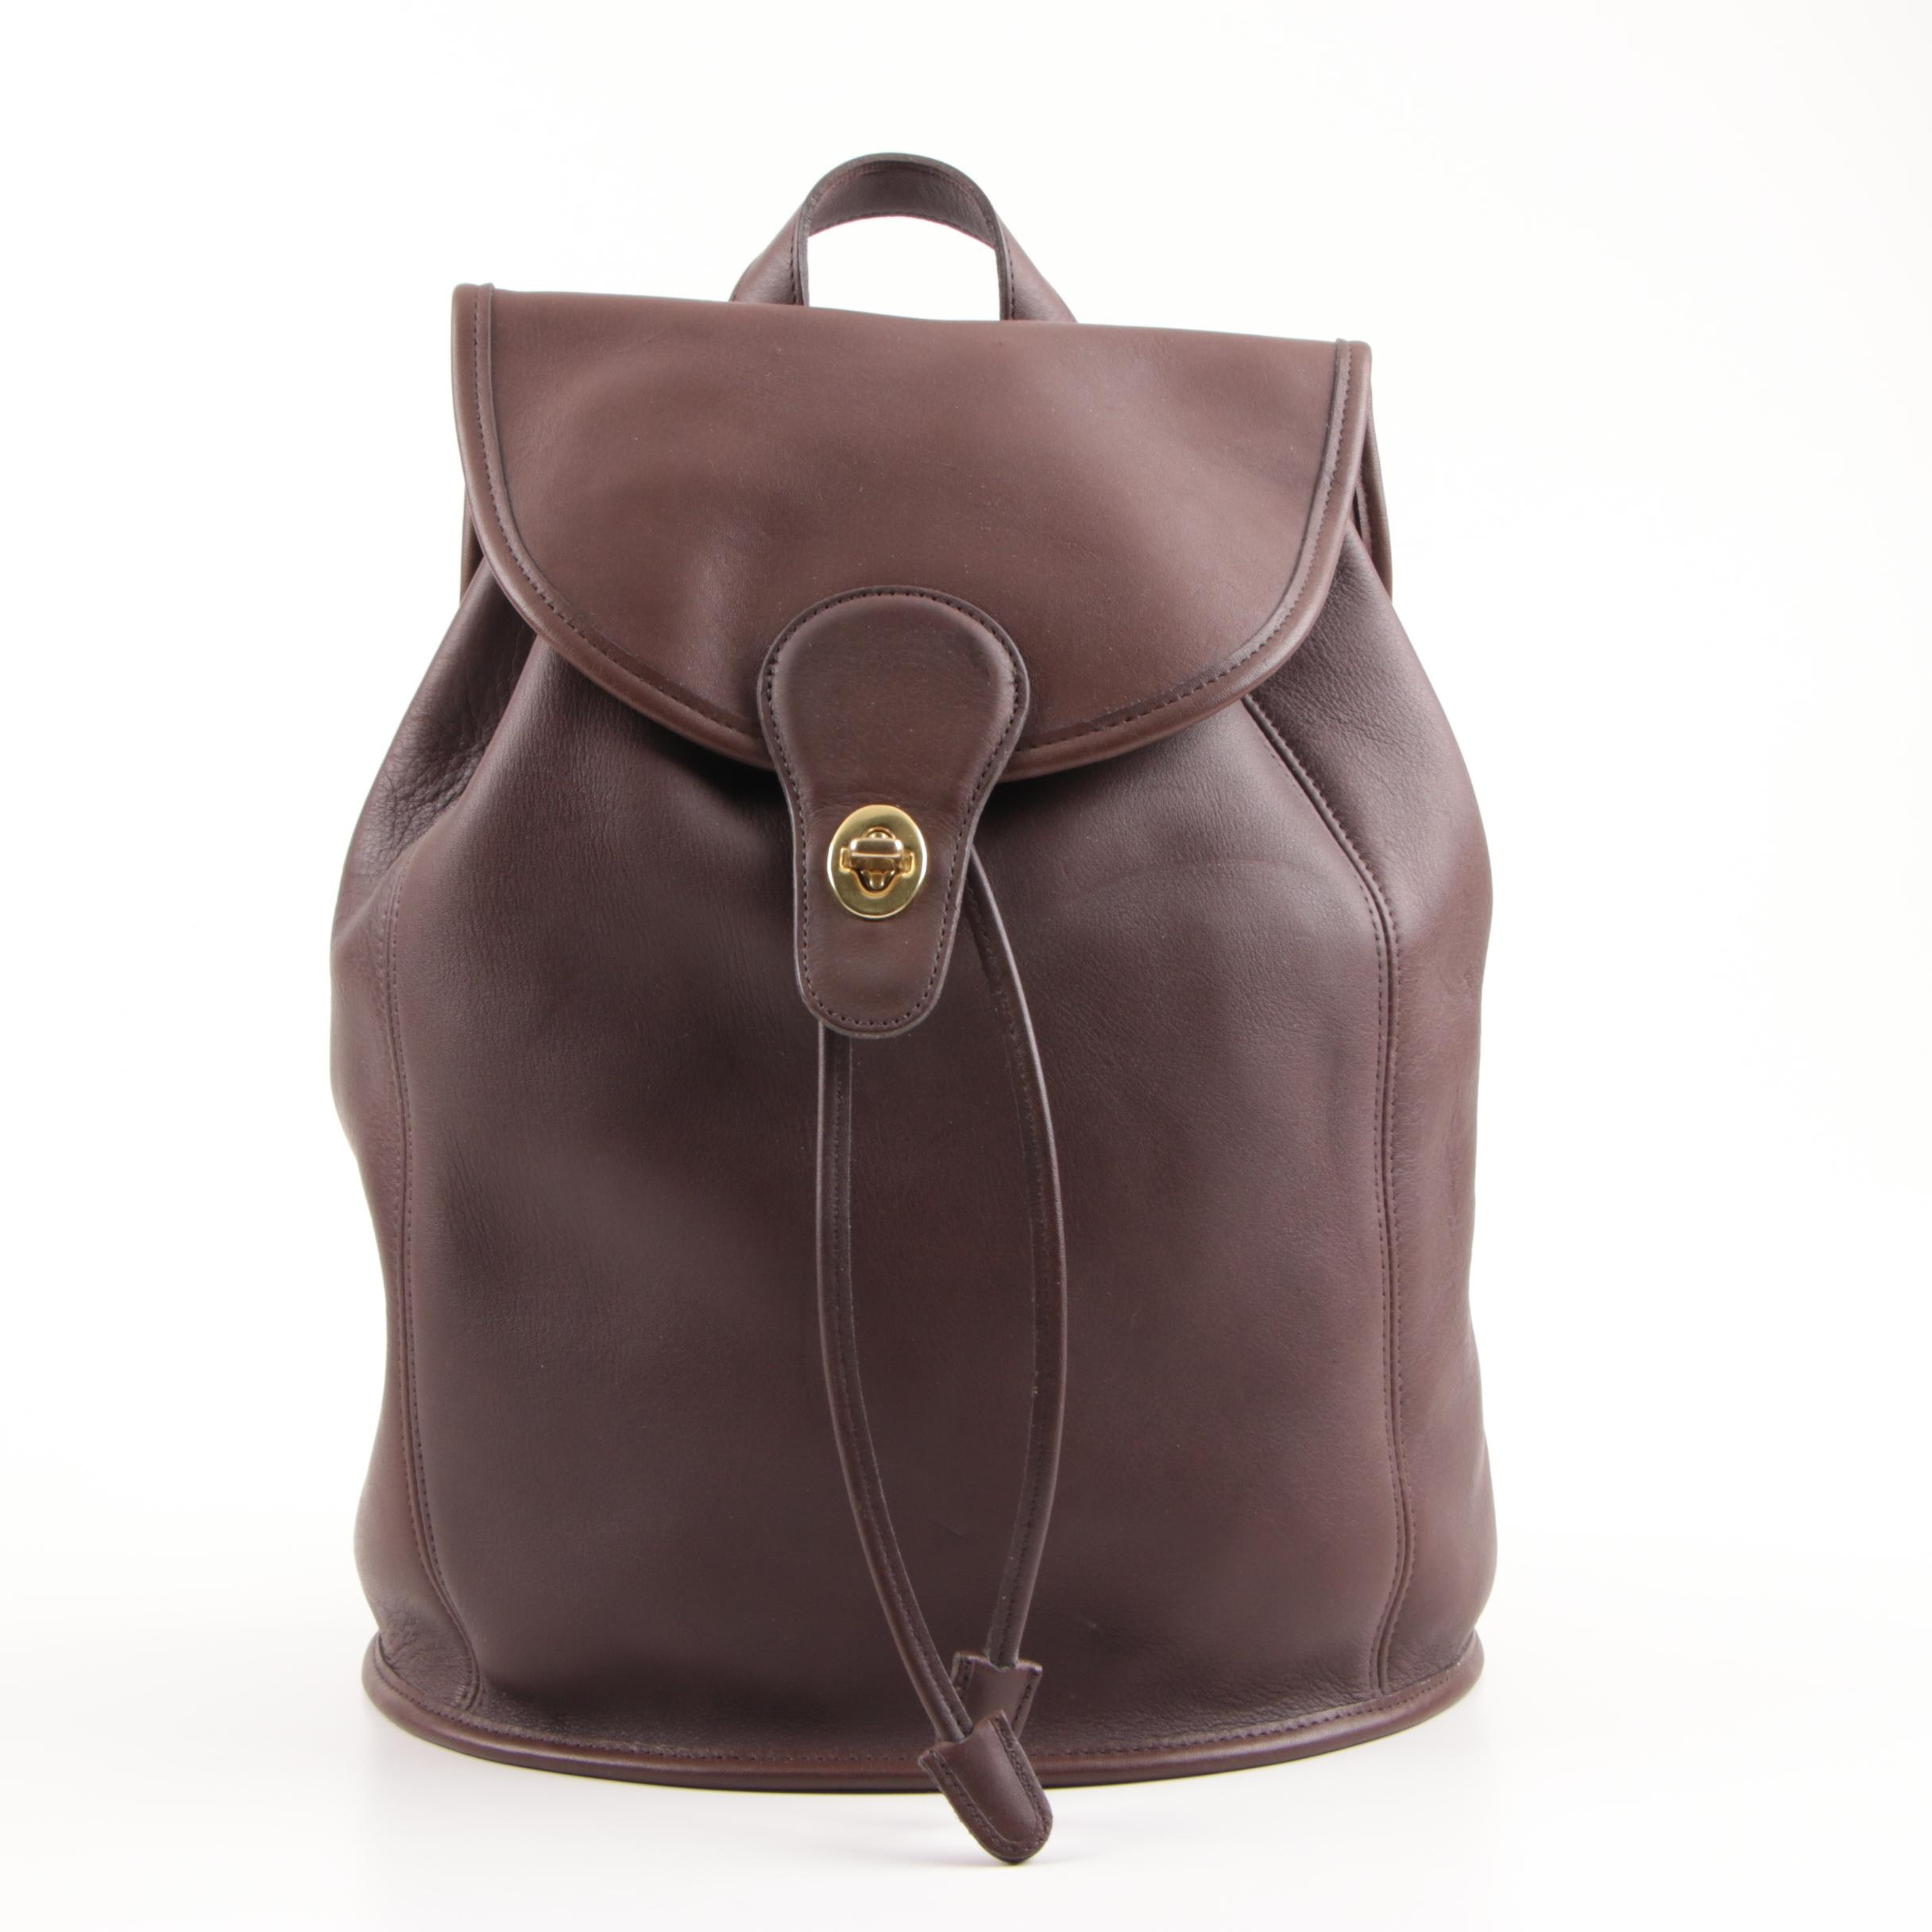 1995 Coach Classic Brown Leather Backpack